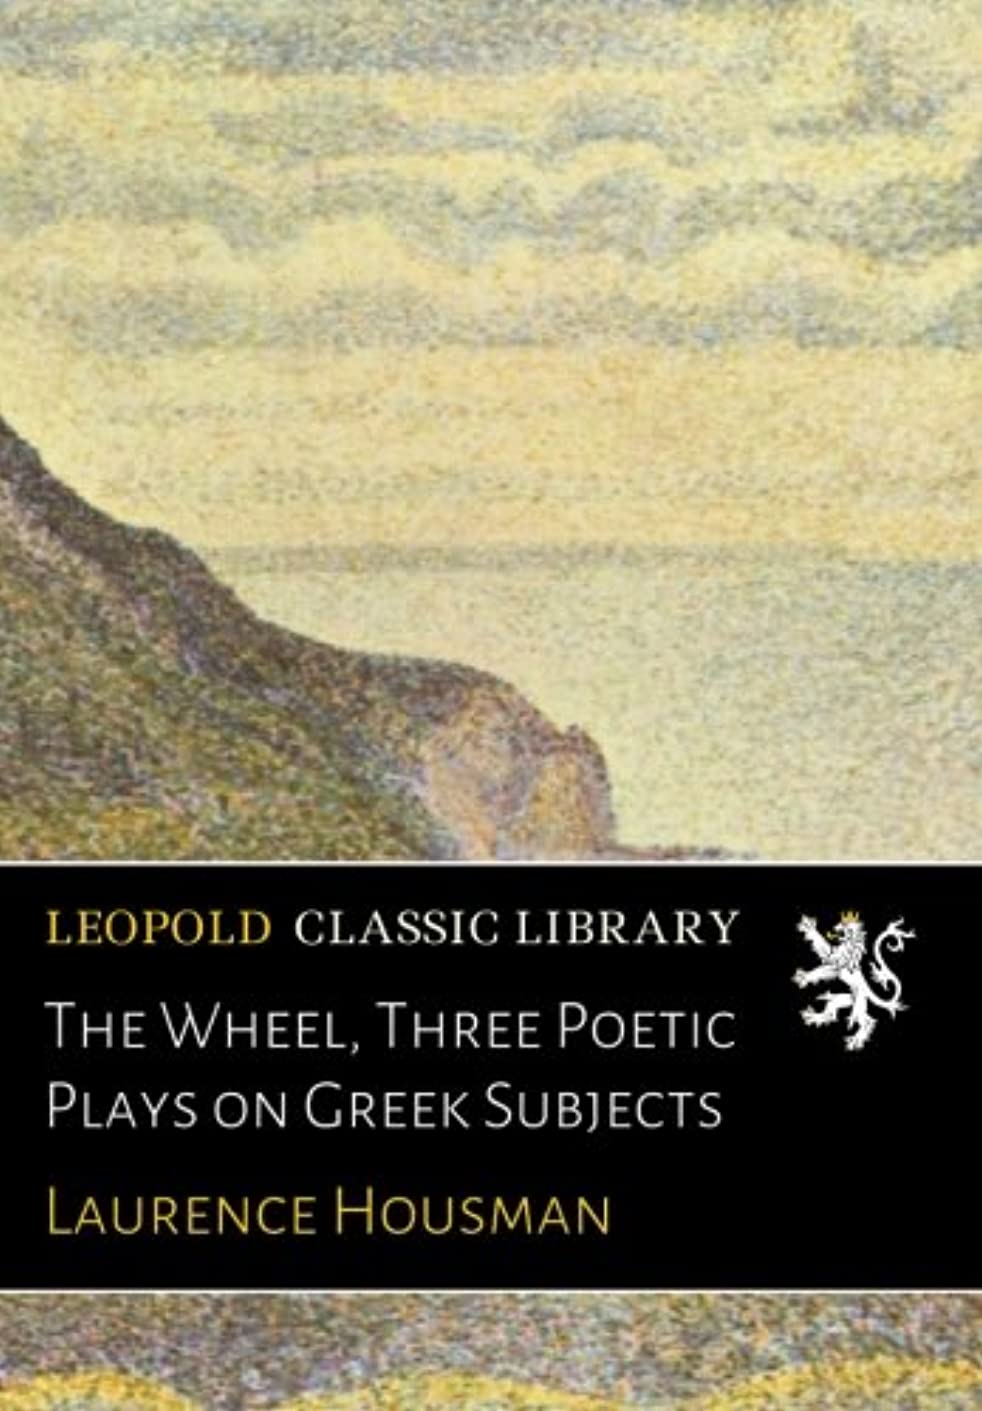 ダンス小麦粉苛性The Wheel, Three Poetic Plays on Greek Subjects